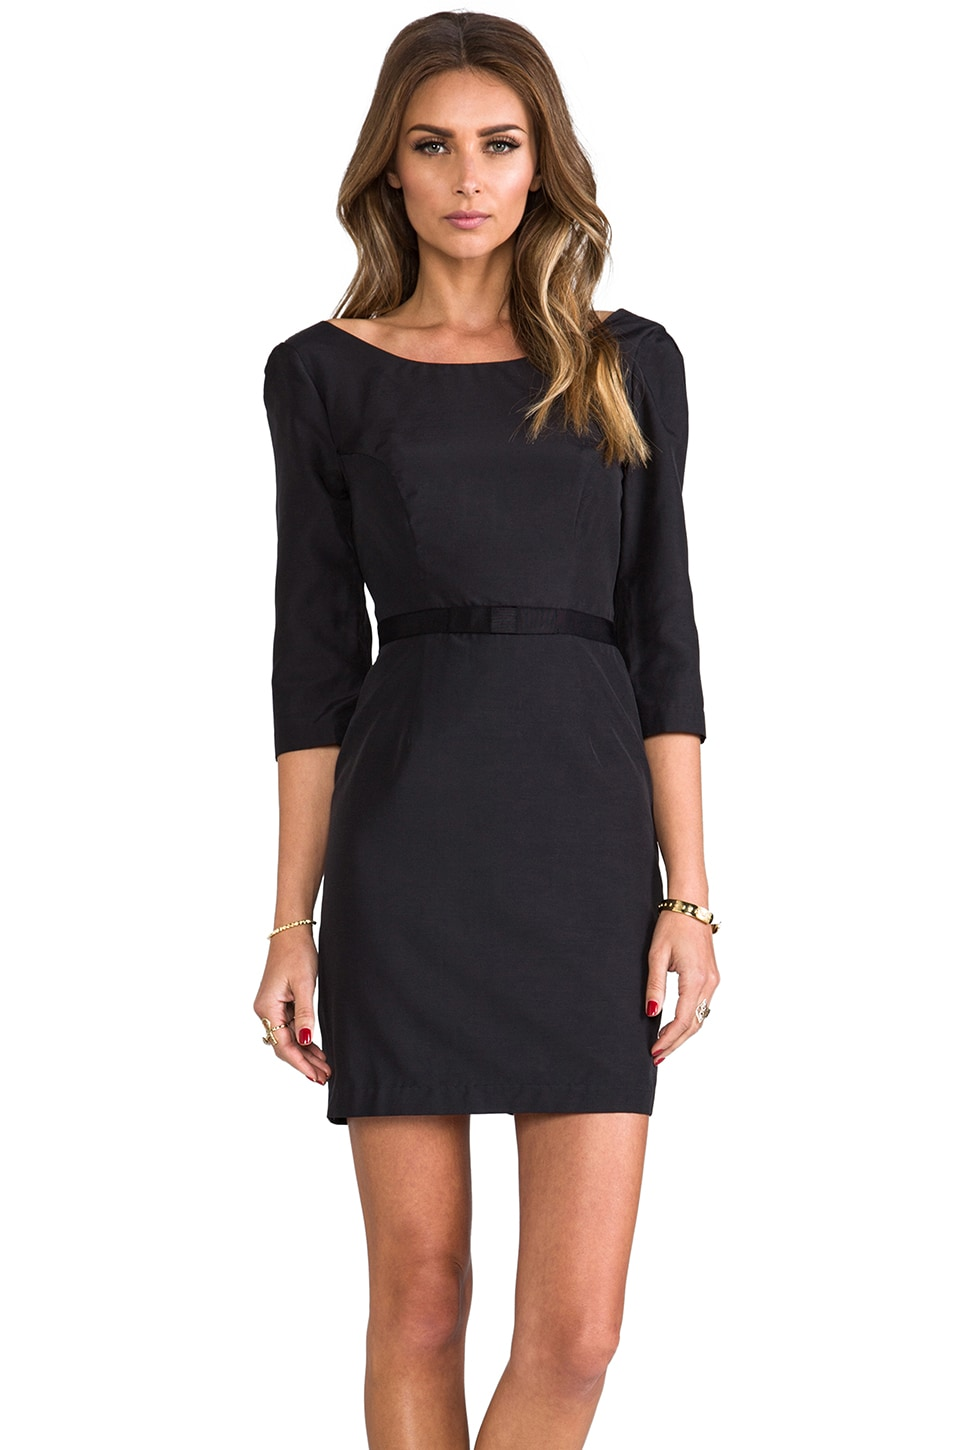 Paper Crown by Lauren Conrad Greta Dress in Black